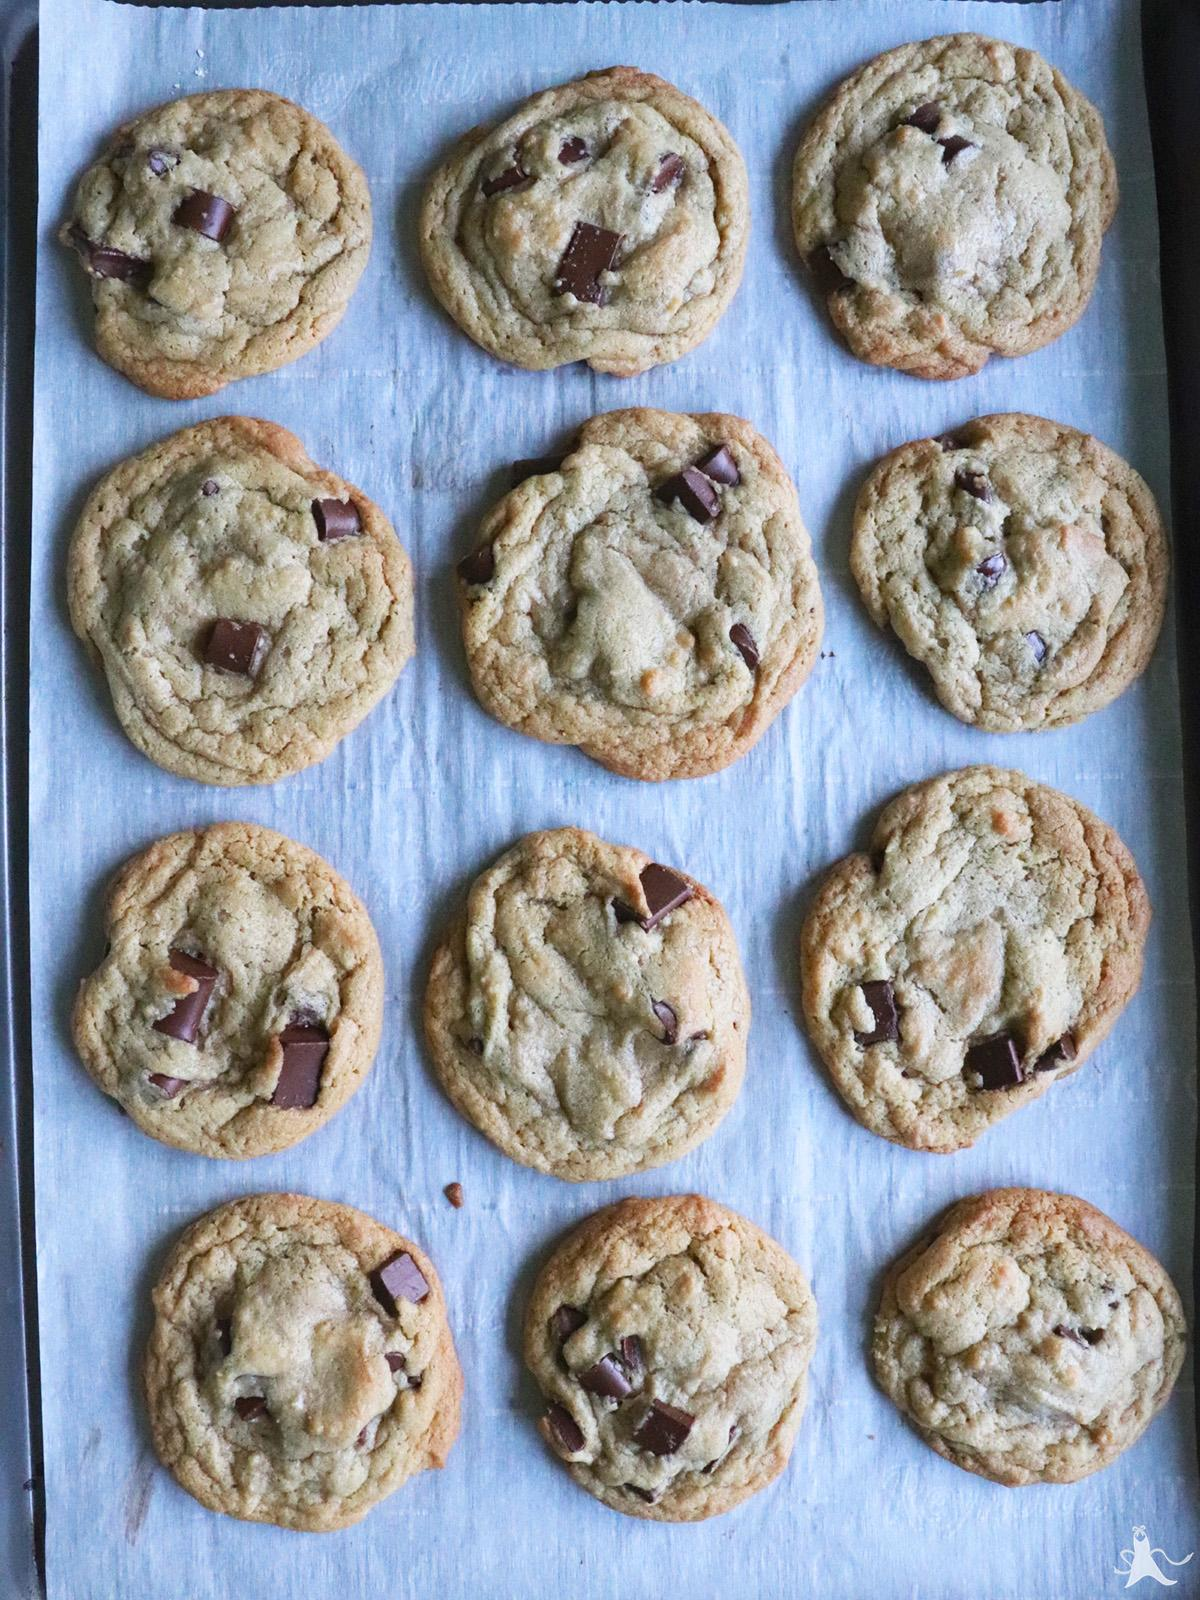 chocolate chip cookies freshly baked on a cookie sheet